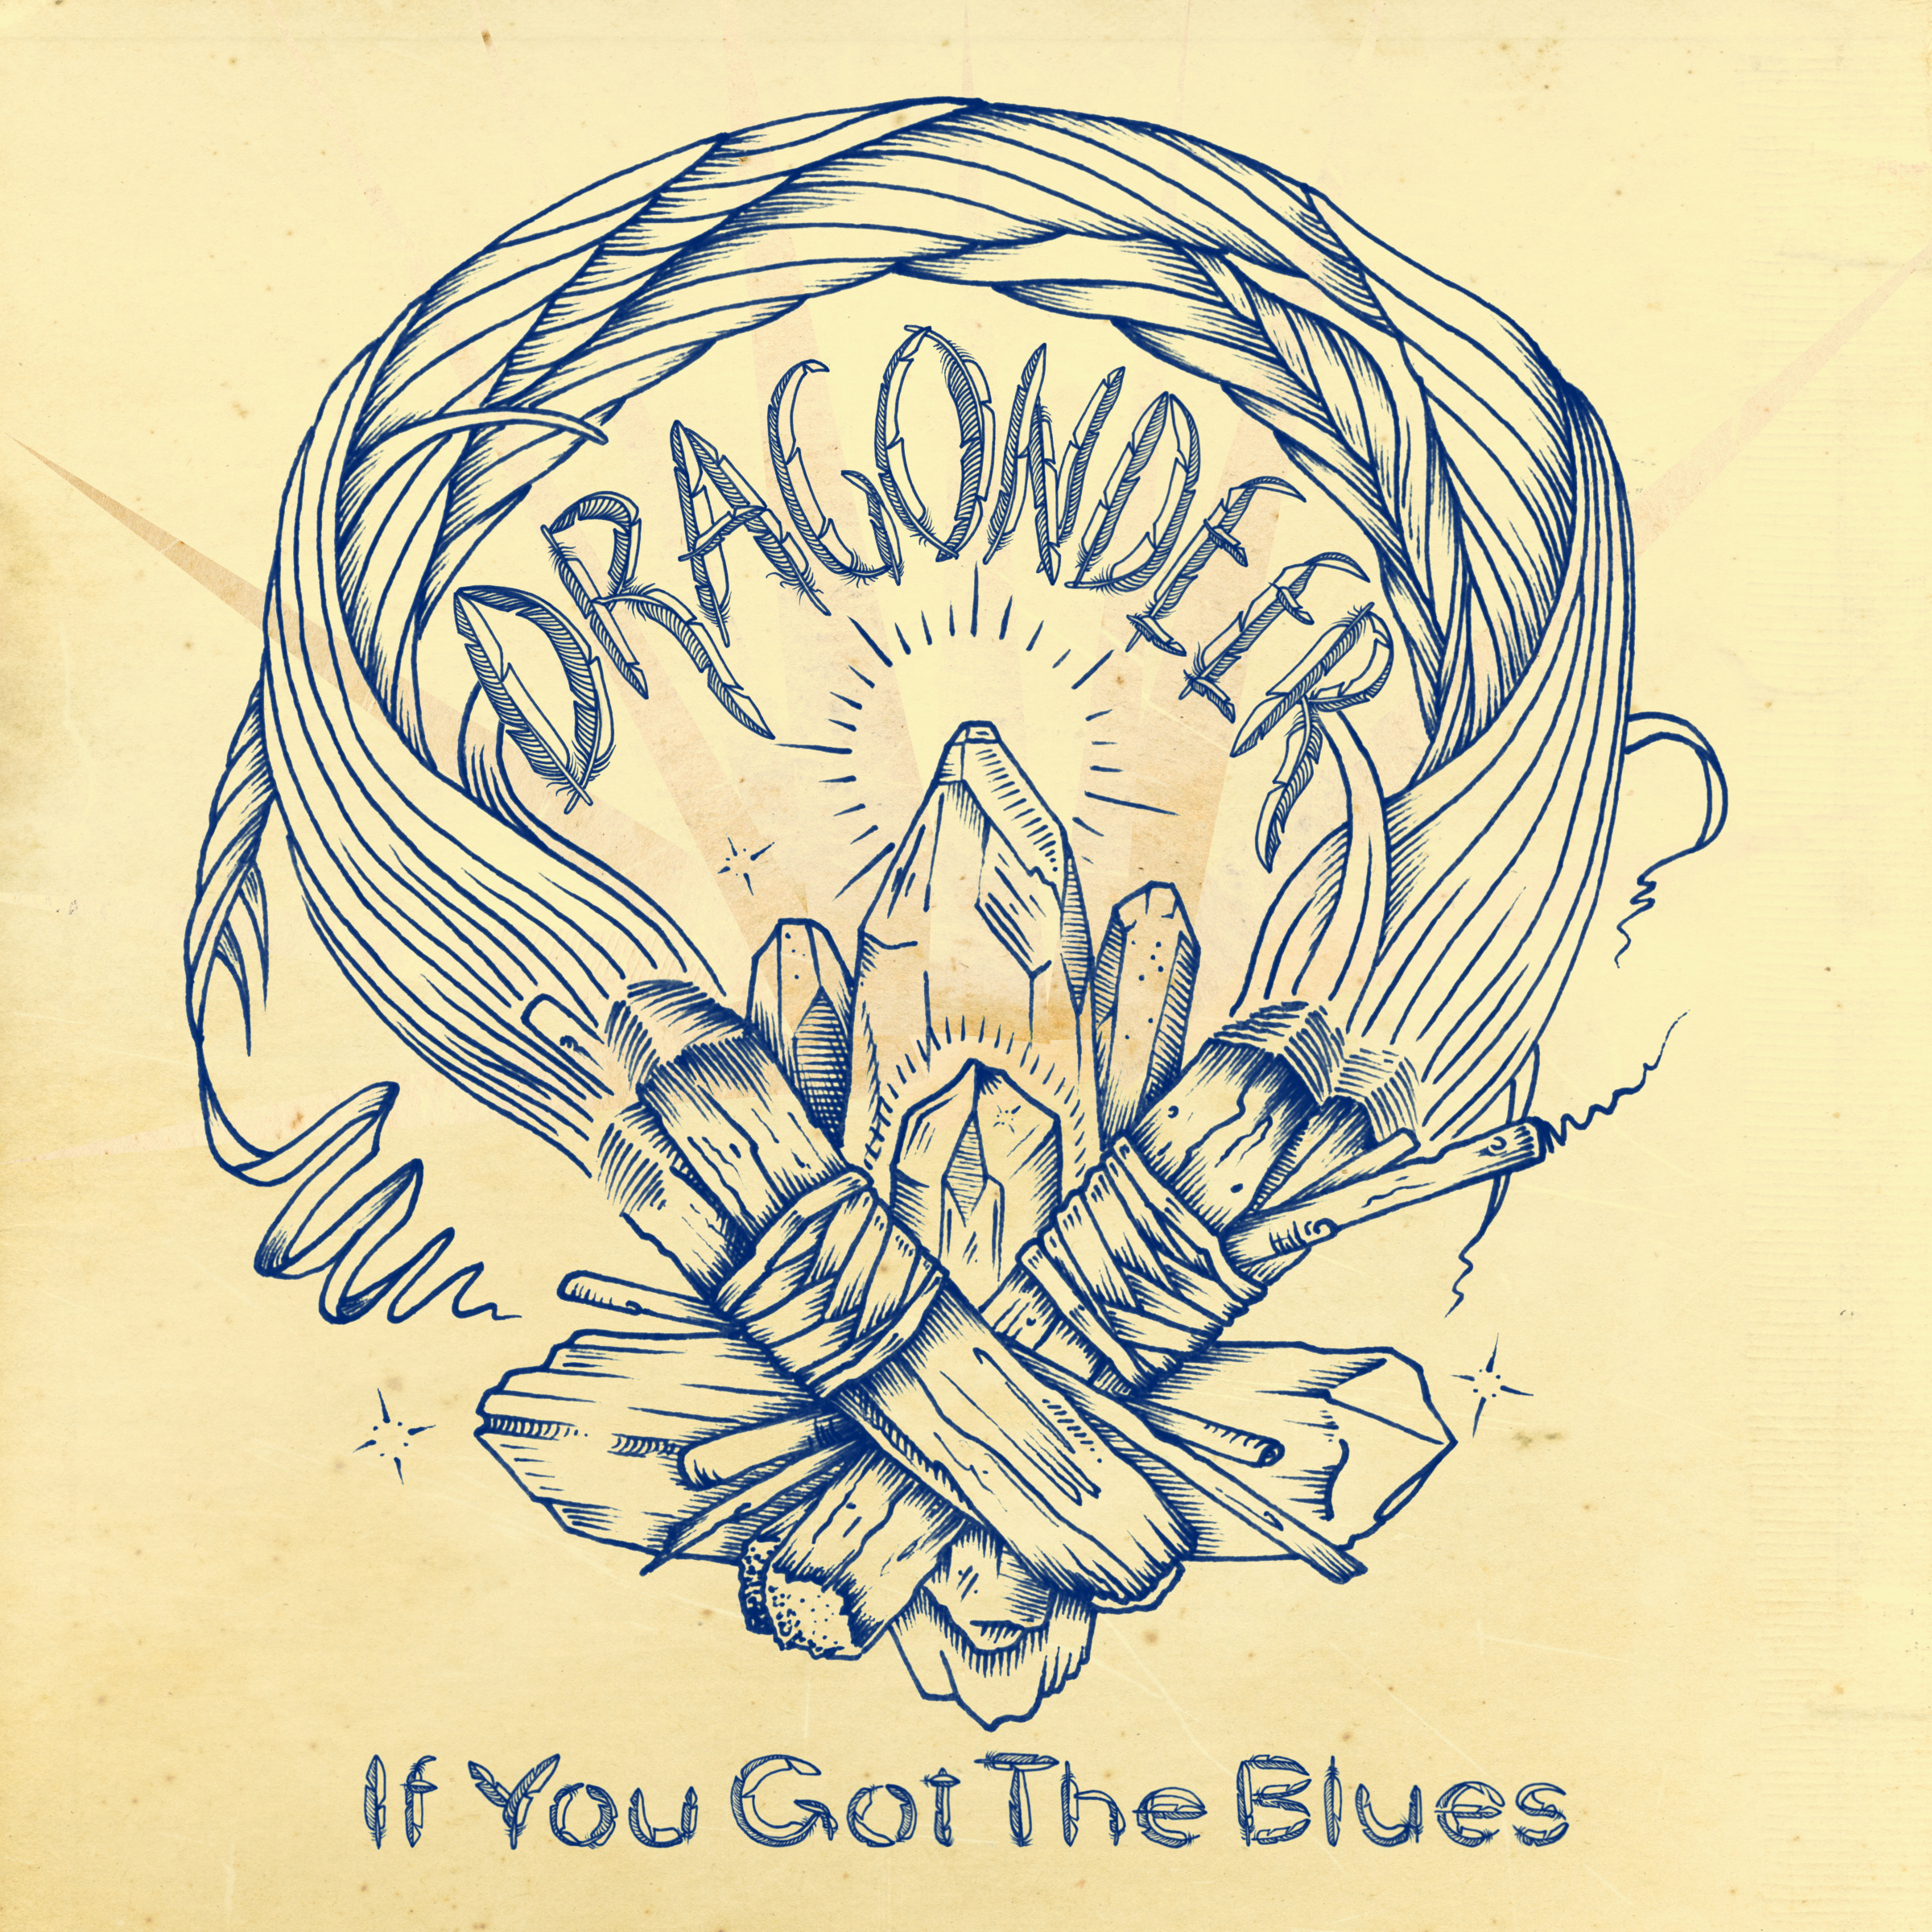 Dragondeer_IfYouGotTheBlues_Cover.jpg